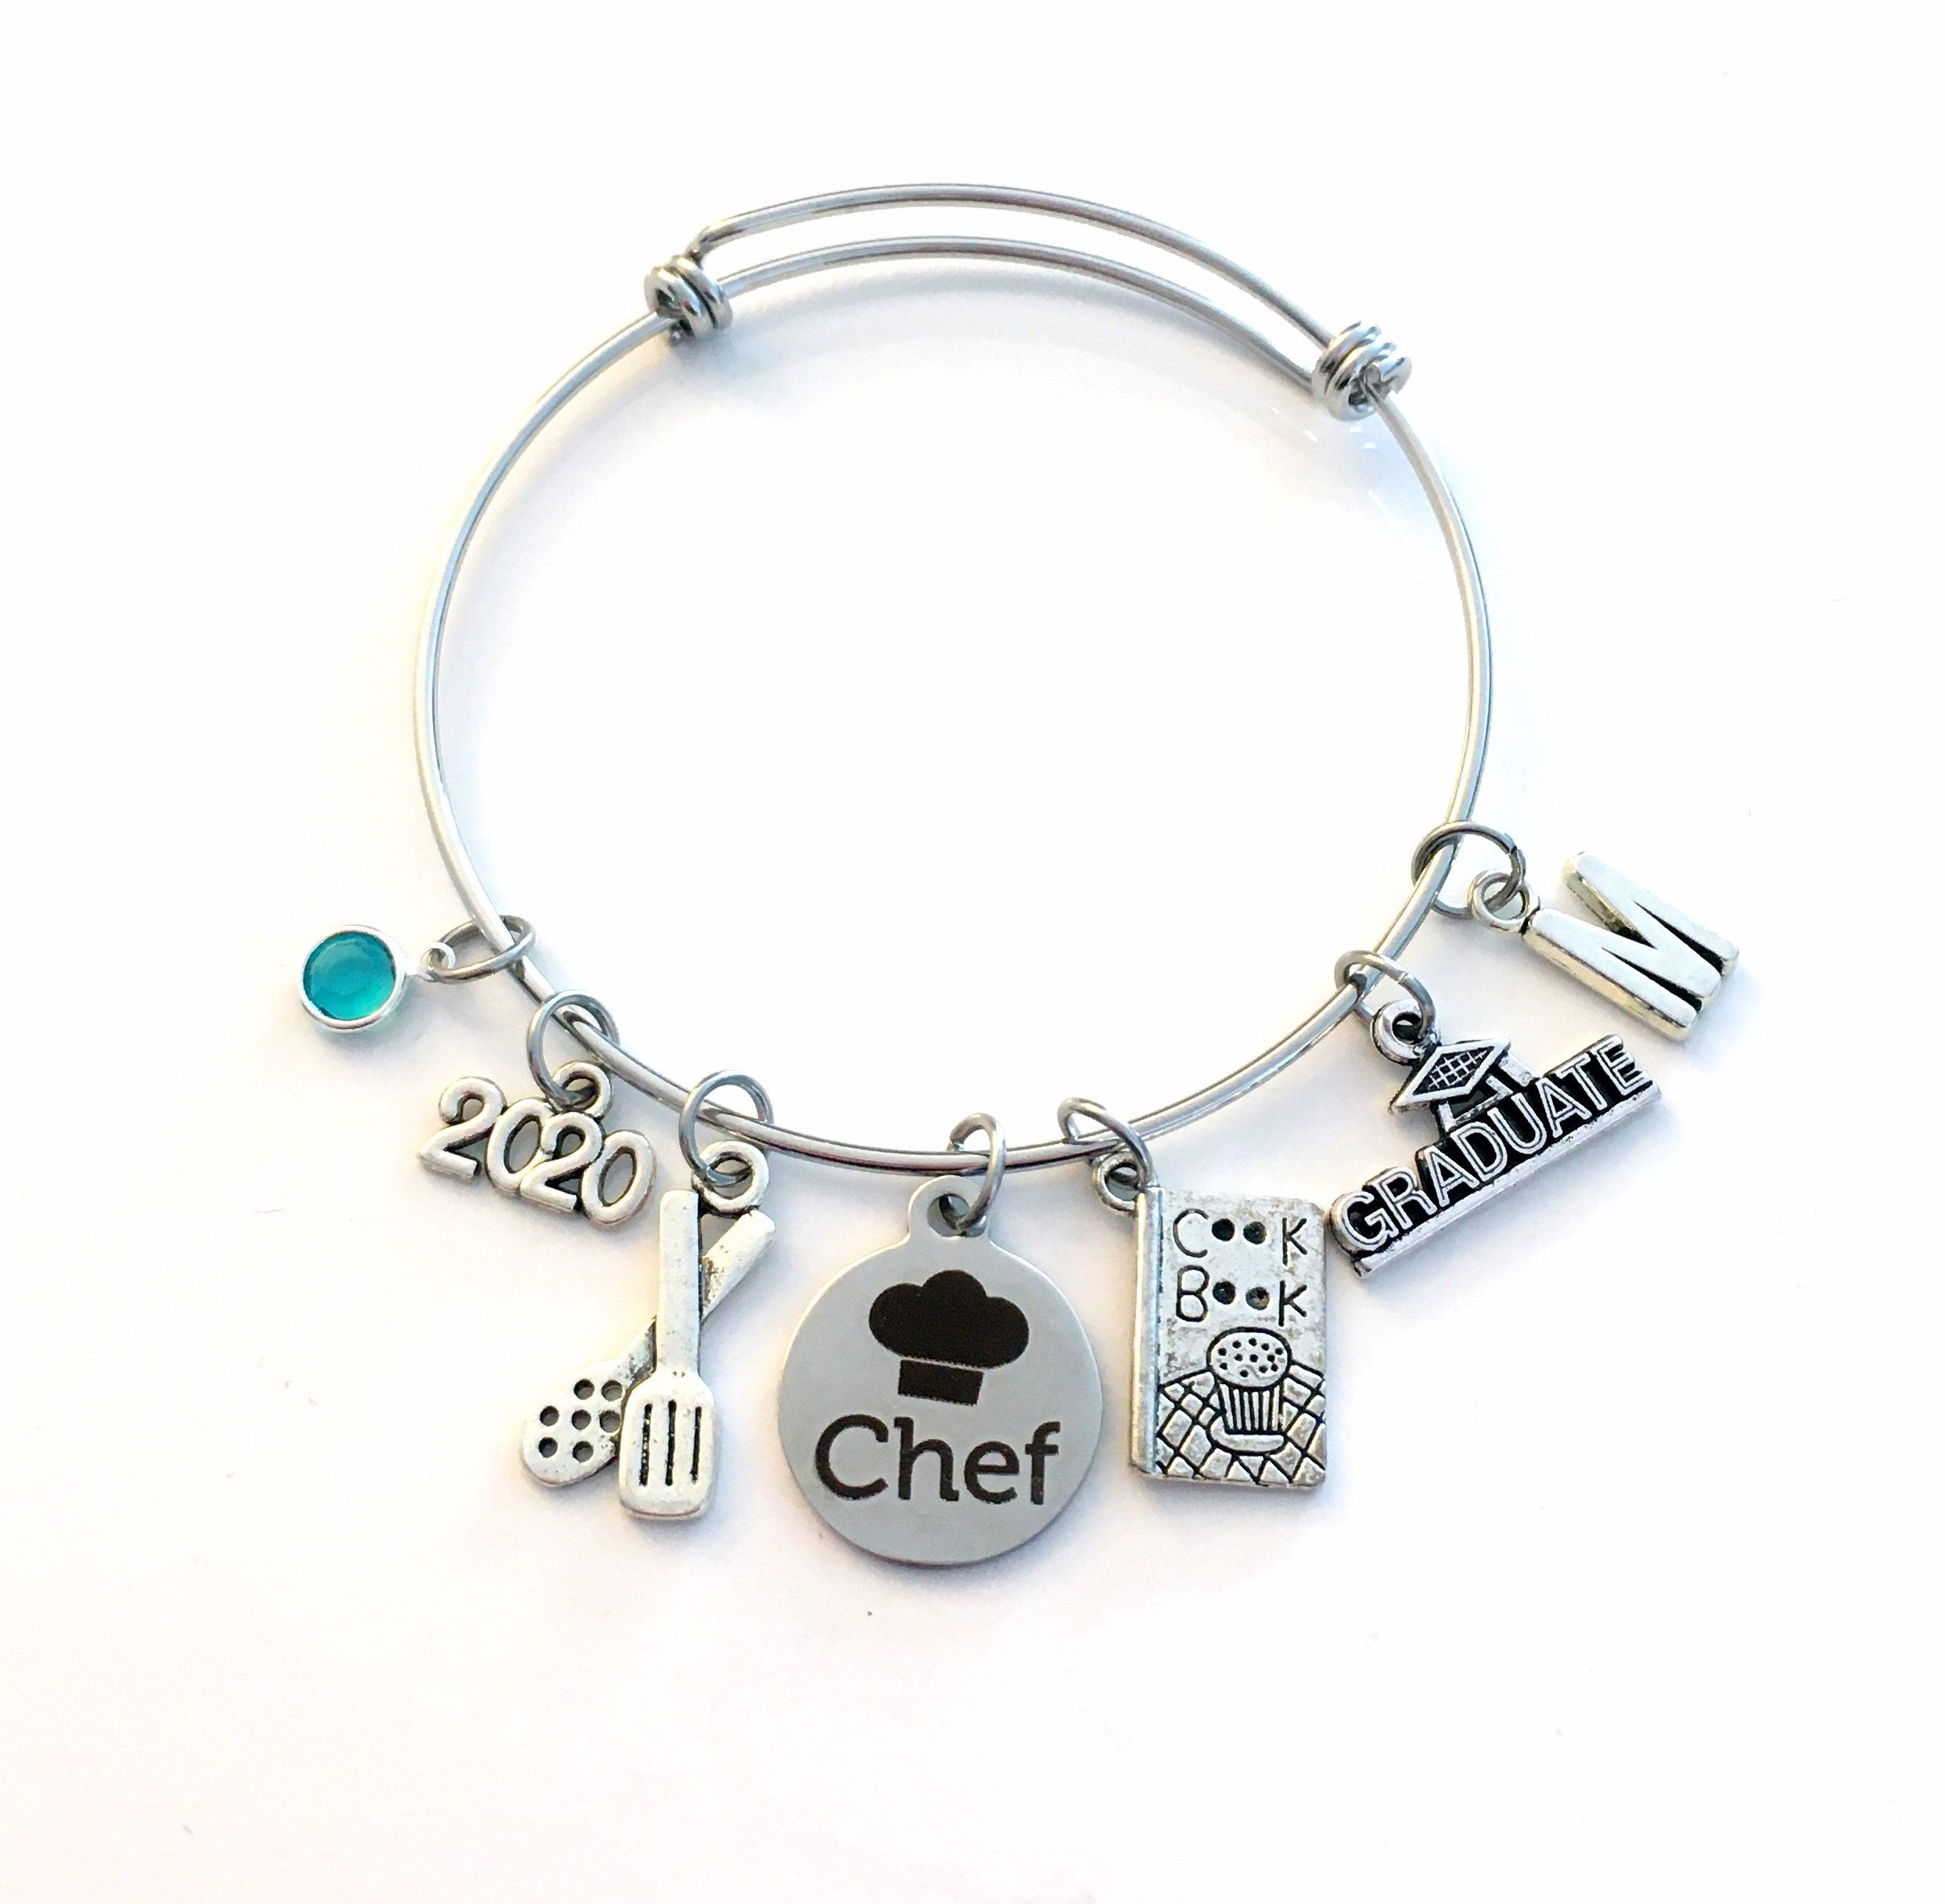 DPT Graduate Gift-Doctor of Physical Therapy Graduation Bracelet,-Physical Therapist Jewelry-Doctor Grad-Medical Charm Bracelet-DPT Gift